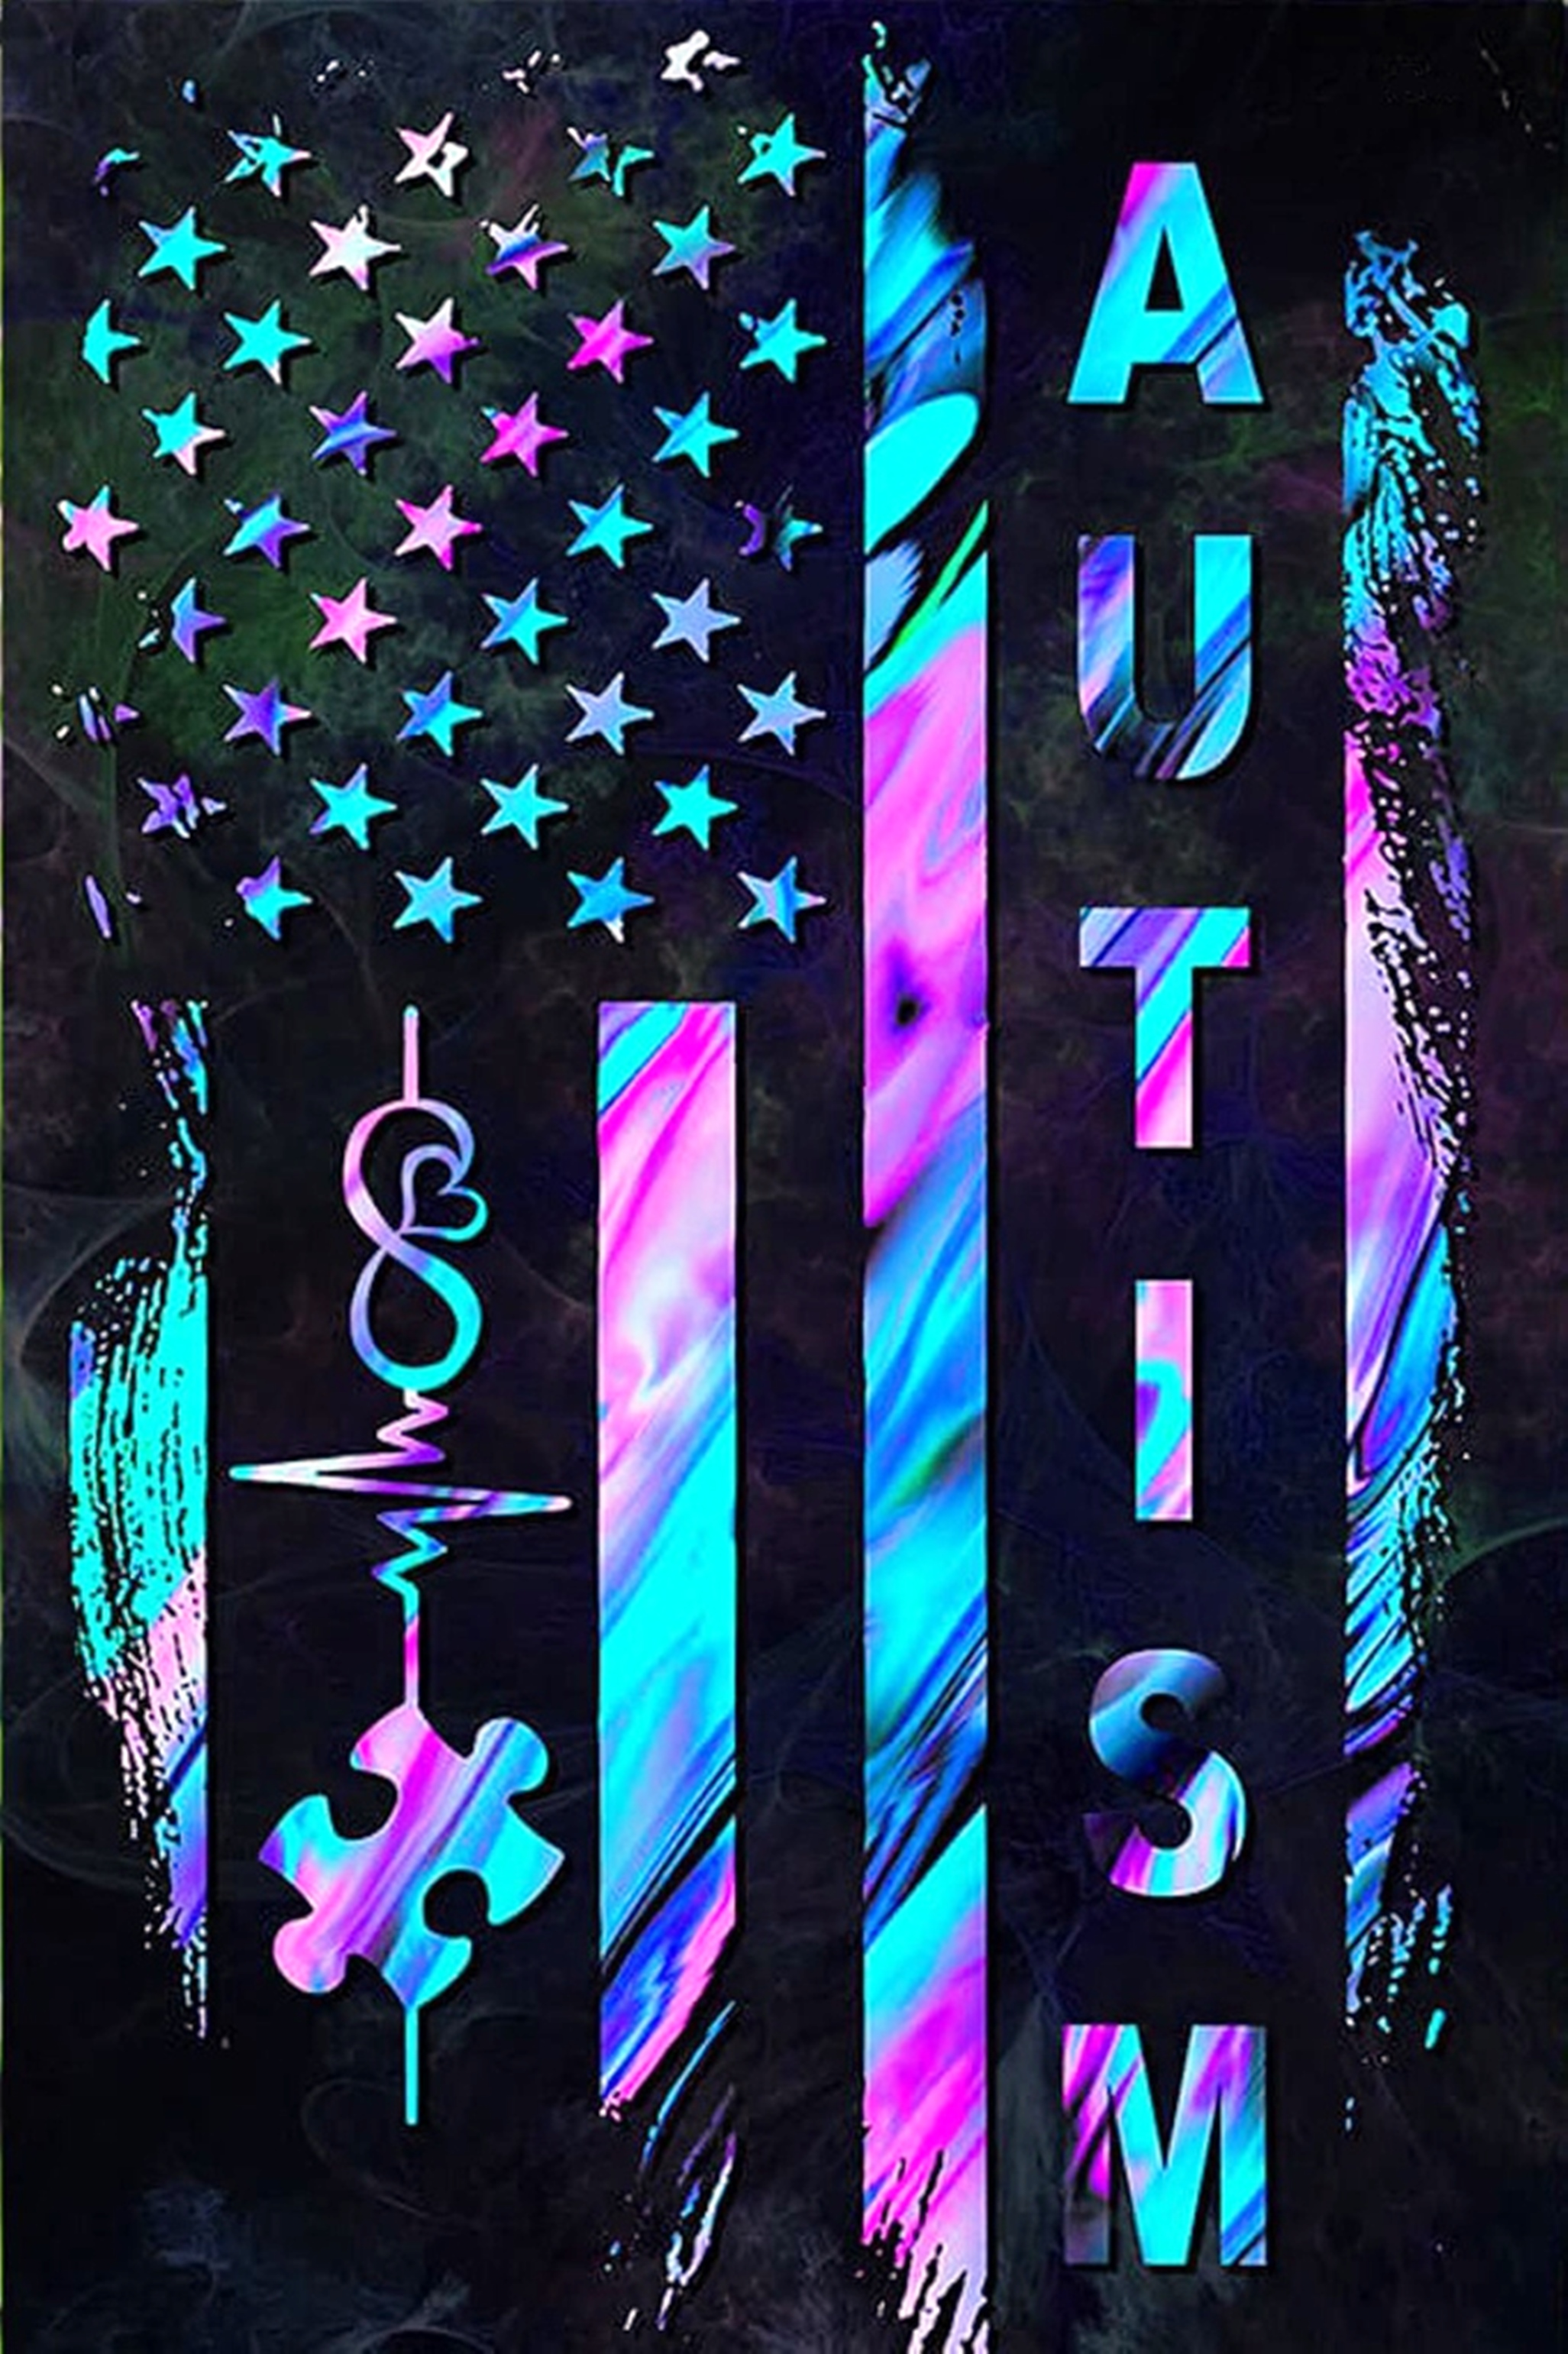 Details about  /UNITED STATES USA FREE SHIPPING ! DOUBLE SIDED 13 x 20 GARDEN FLAG